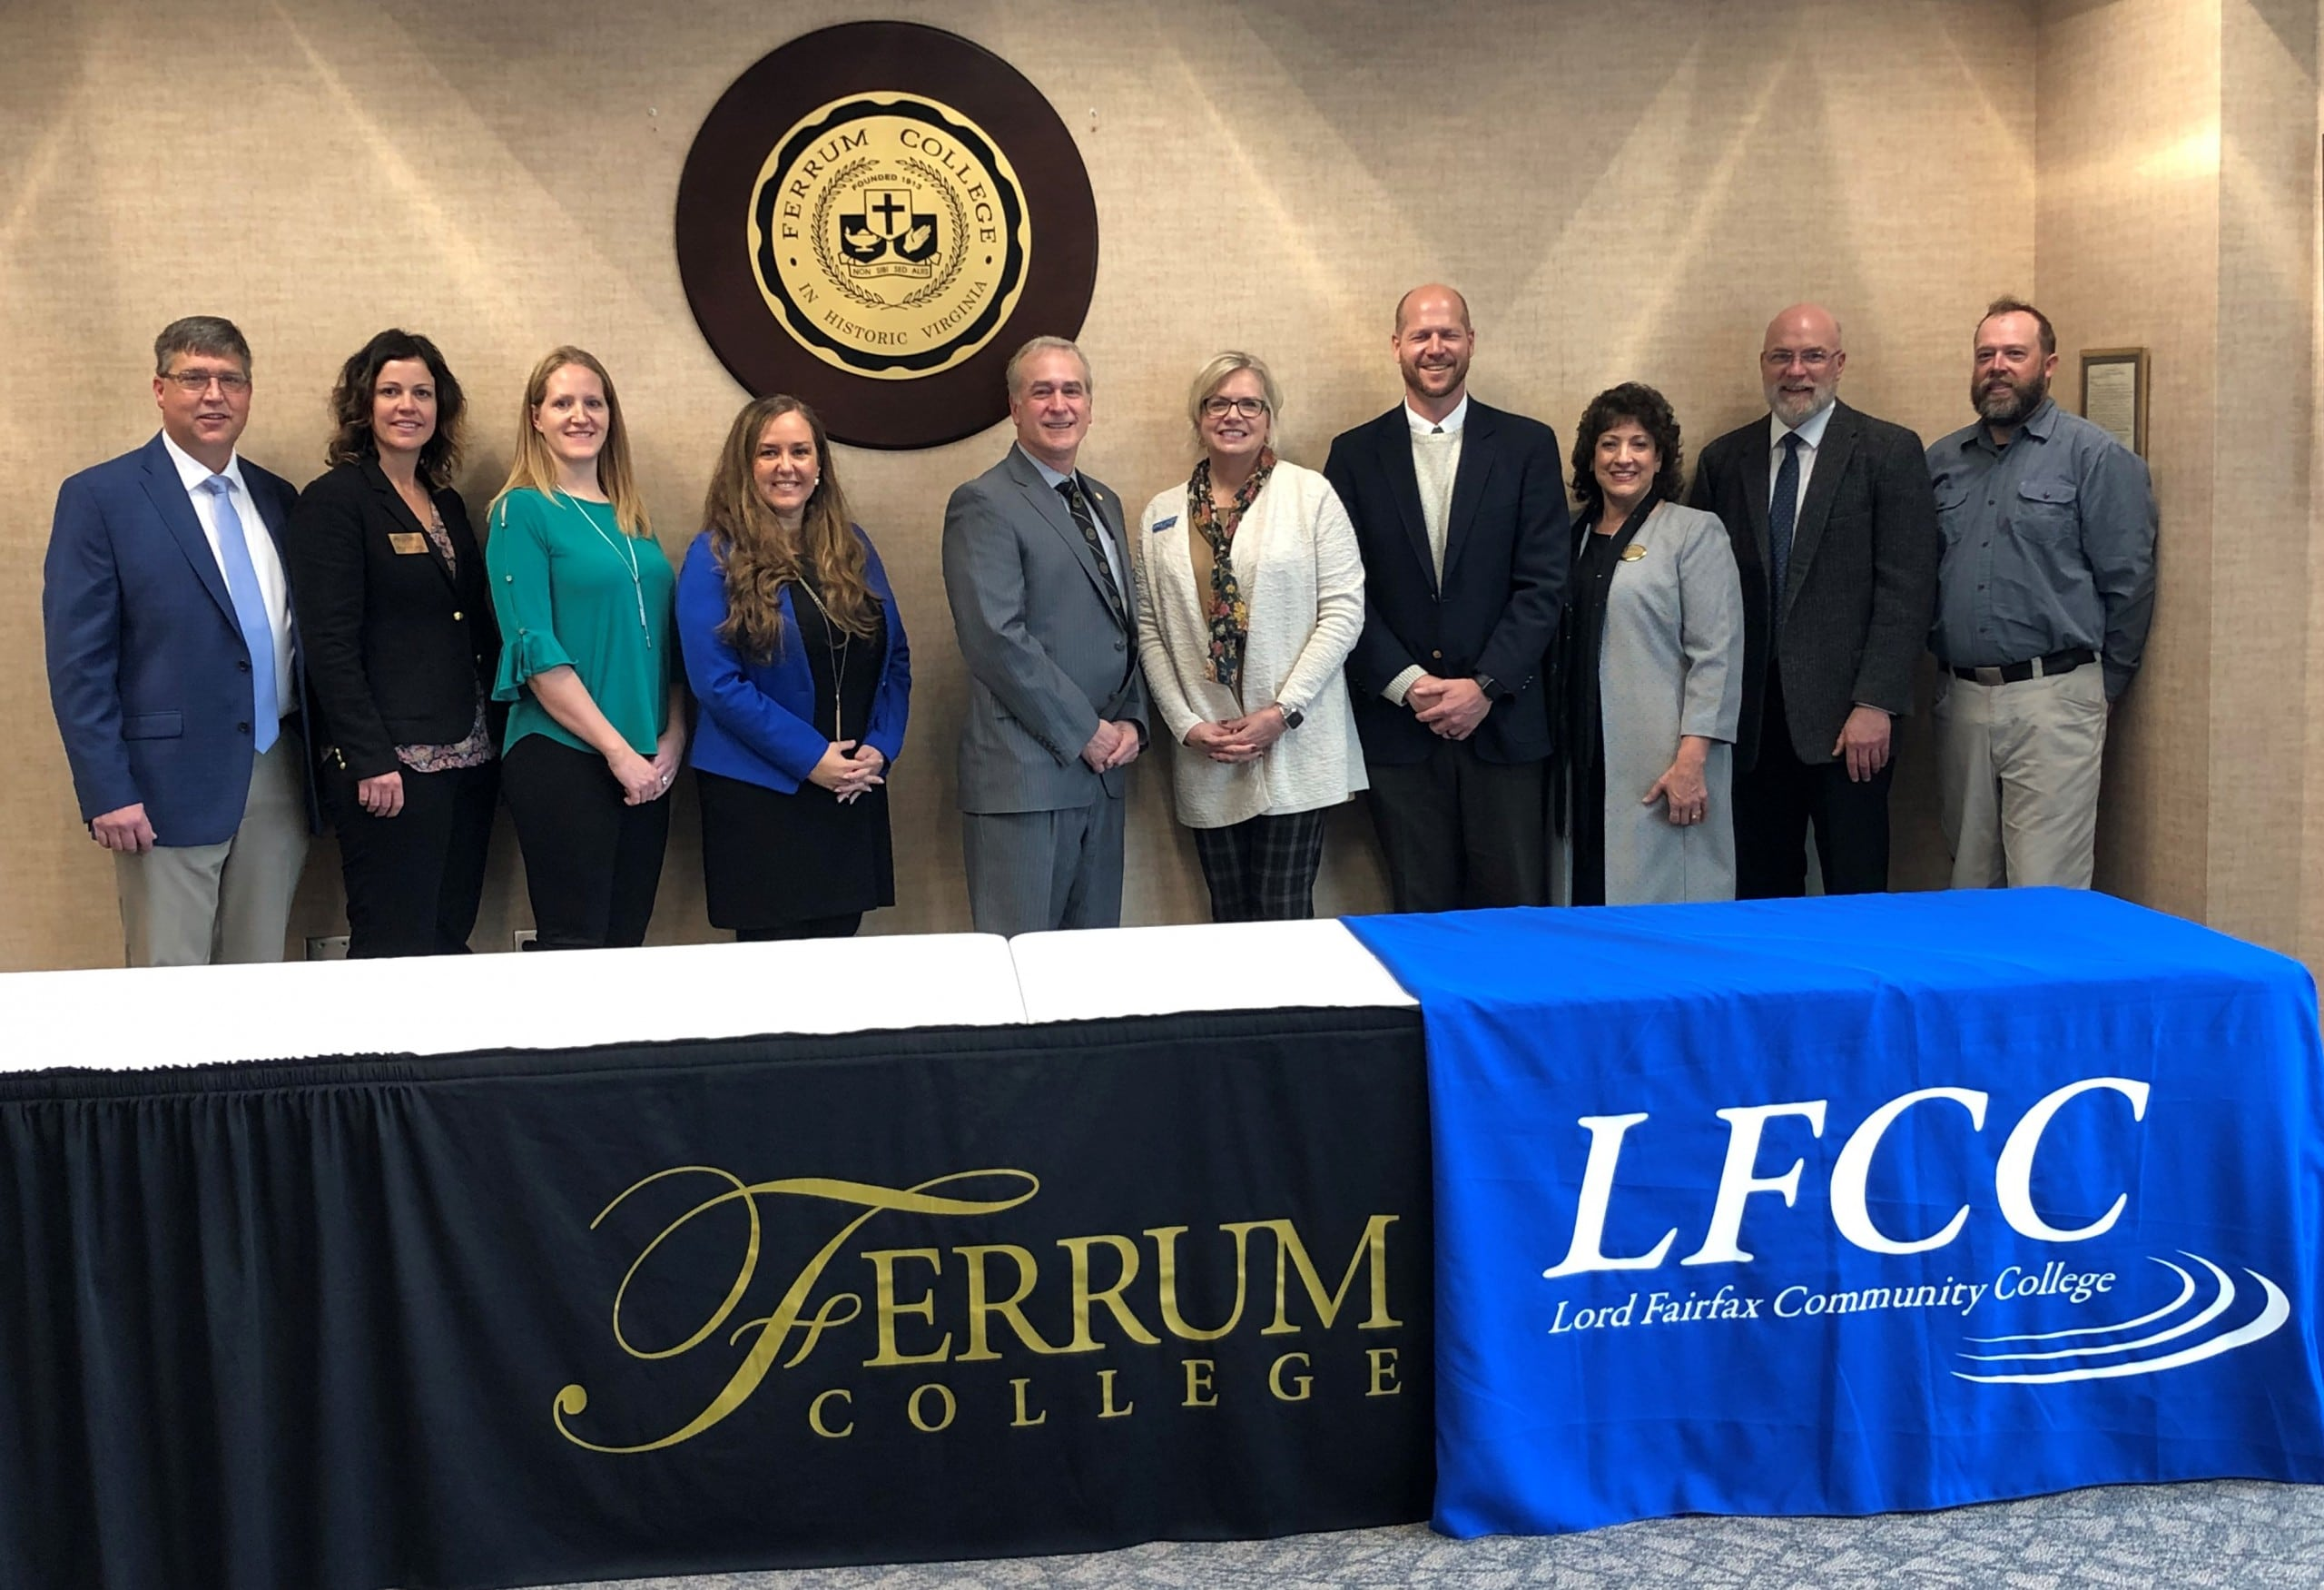 Ferrum College and Lord Fairfax Community College (LFCC) officials entered into an agreement guaranteeing admission into Ferrum College's recreation leadership program, to LFCC students who have received an Associate of Science degree in recreation and outdoor leadership.